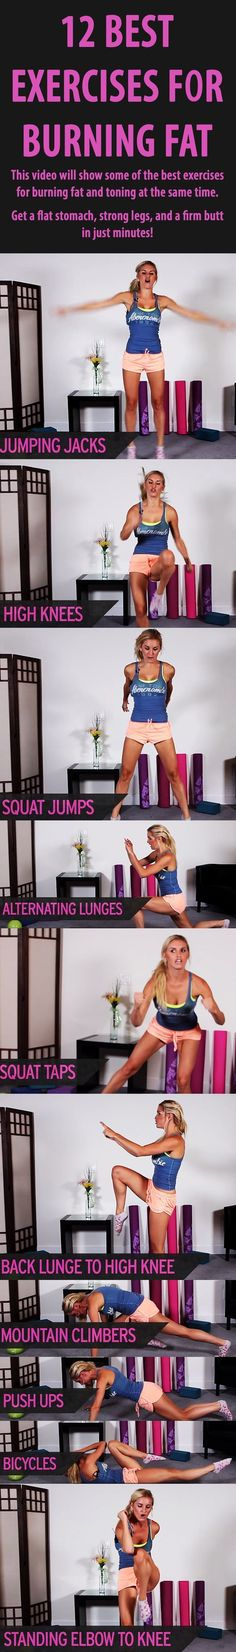 See more here ? www.youtube.com/... Tags: lose weight best way, best way to loss weight, best way for teens to lose weight - Do these for HIIT workout | Calorie burning workout: 12 absolutely best exe